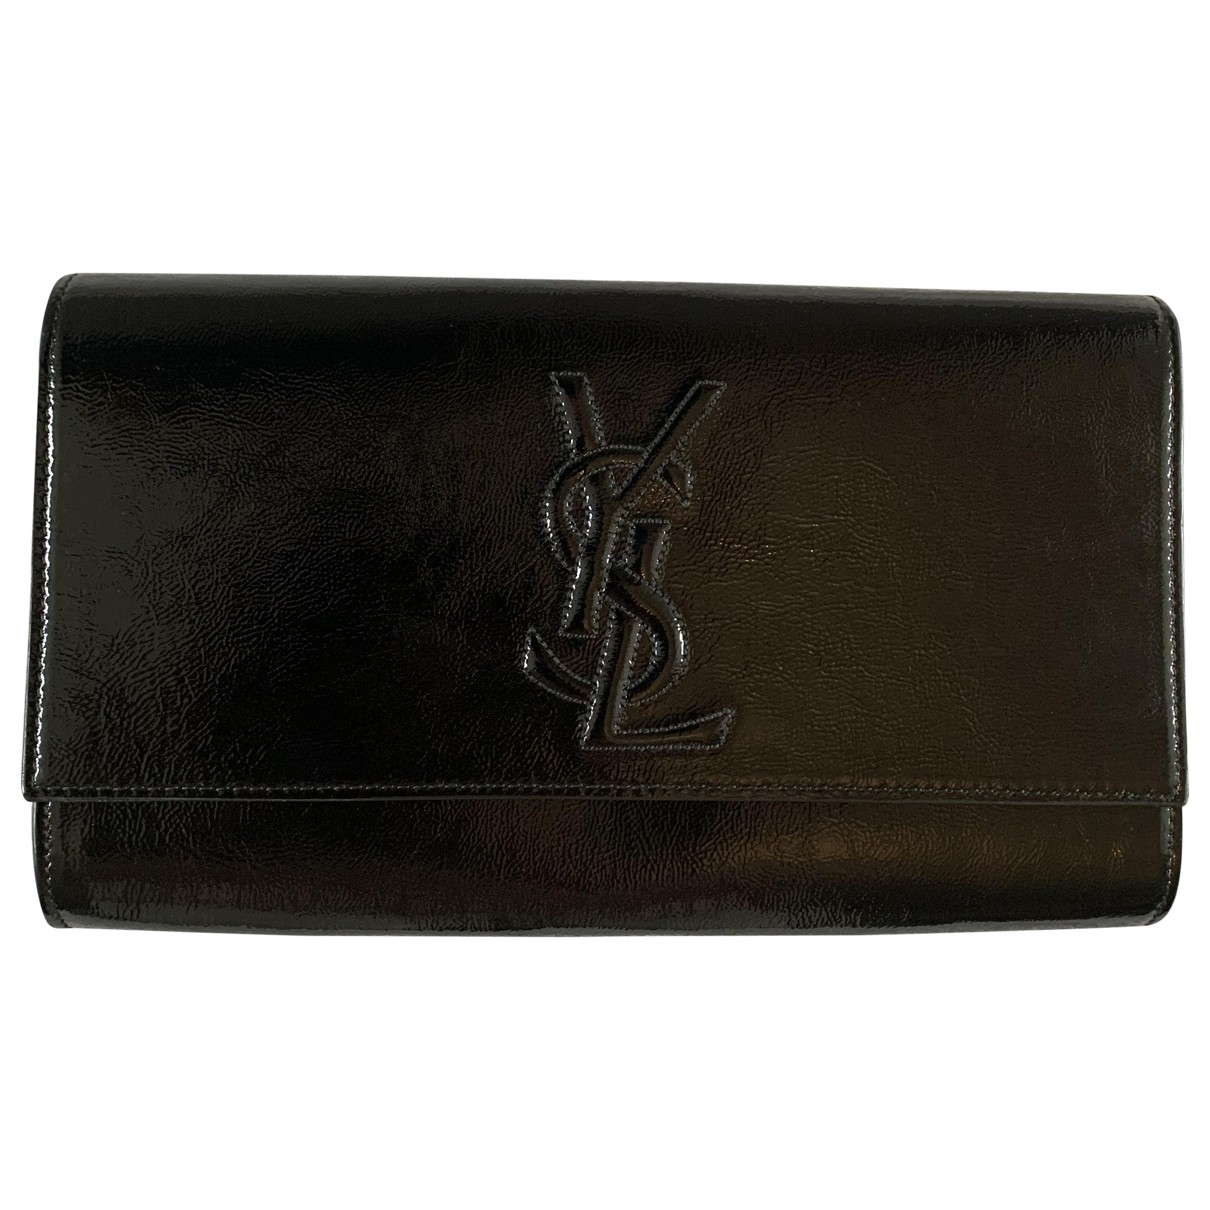 Yves Saint Laurent Belle de Jour Clutch in  Schwarz Lackleder